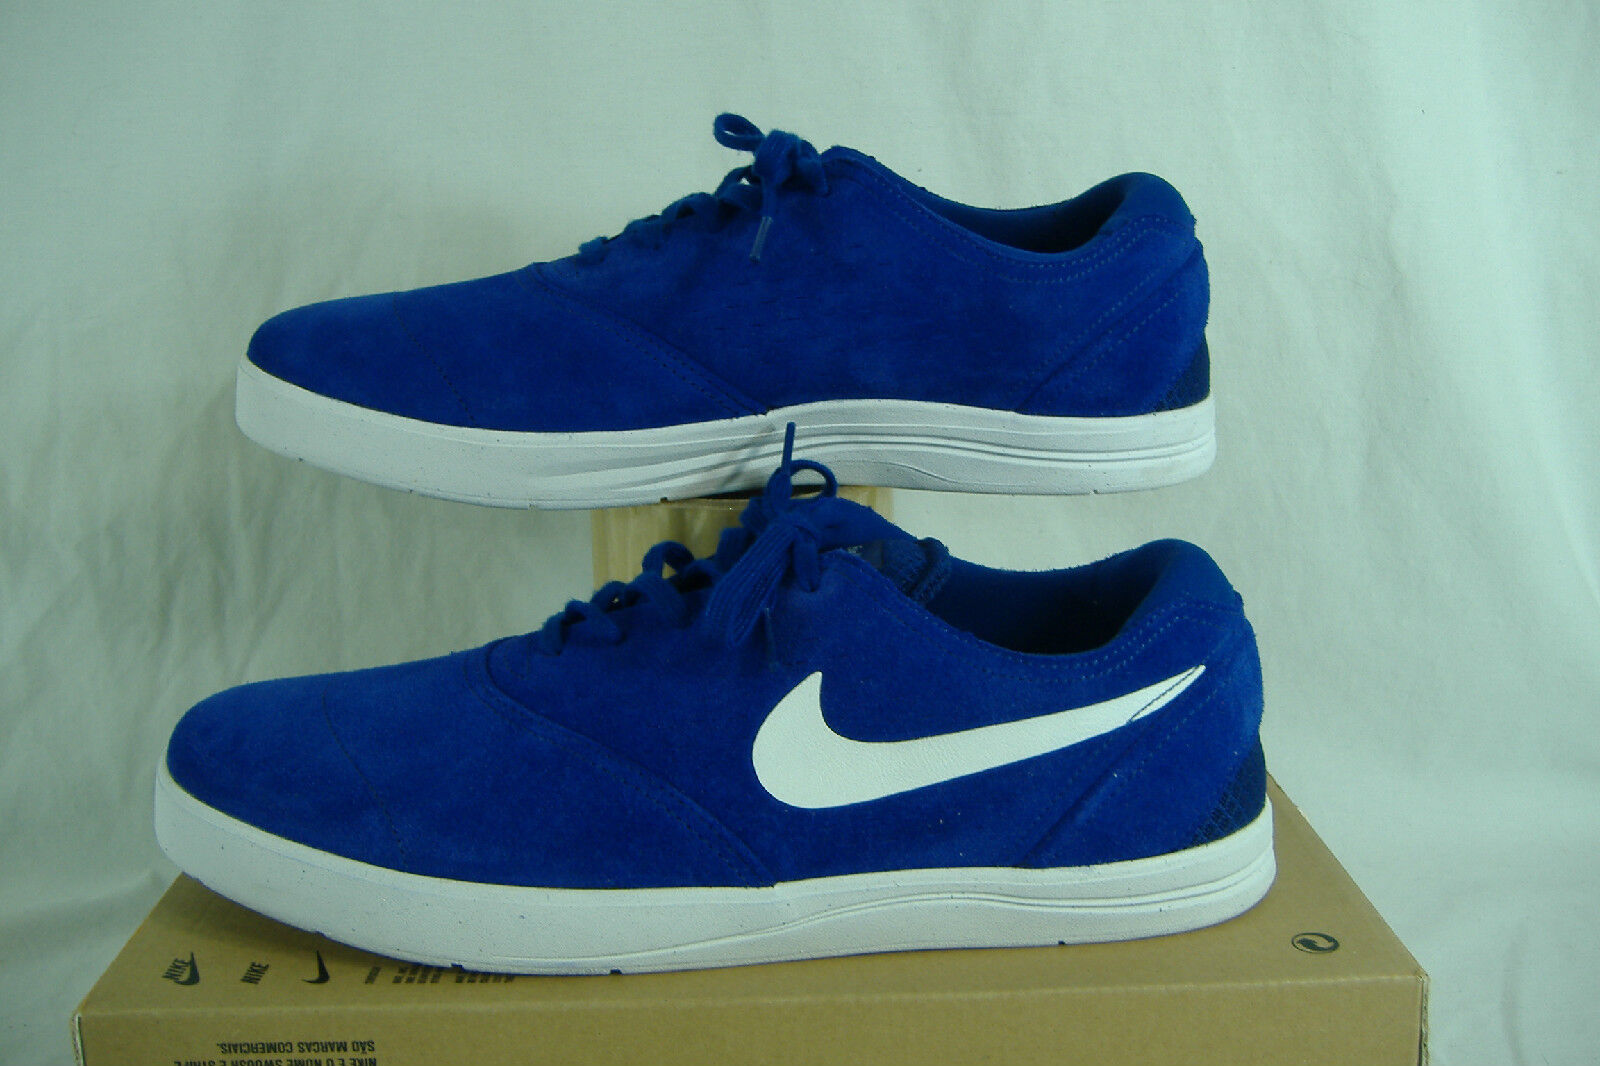 Mens 13 NIKE Koston 2 Deep Royal Blue Suede Leather Skate Shoes 90 844447-401